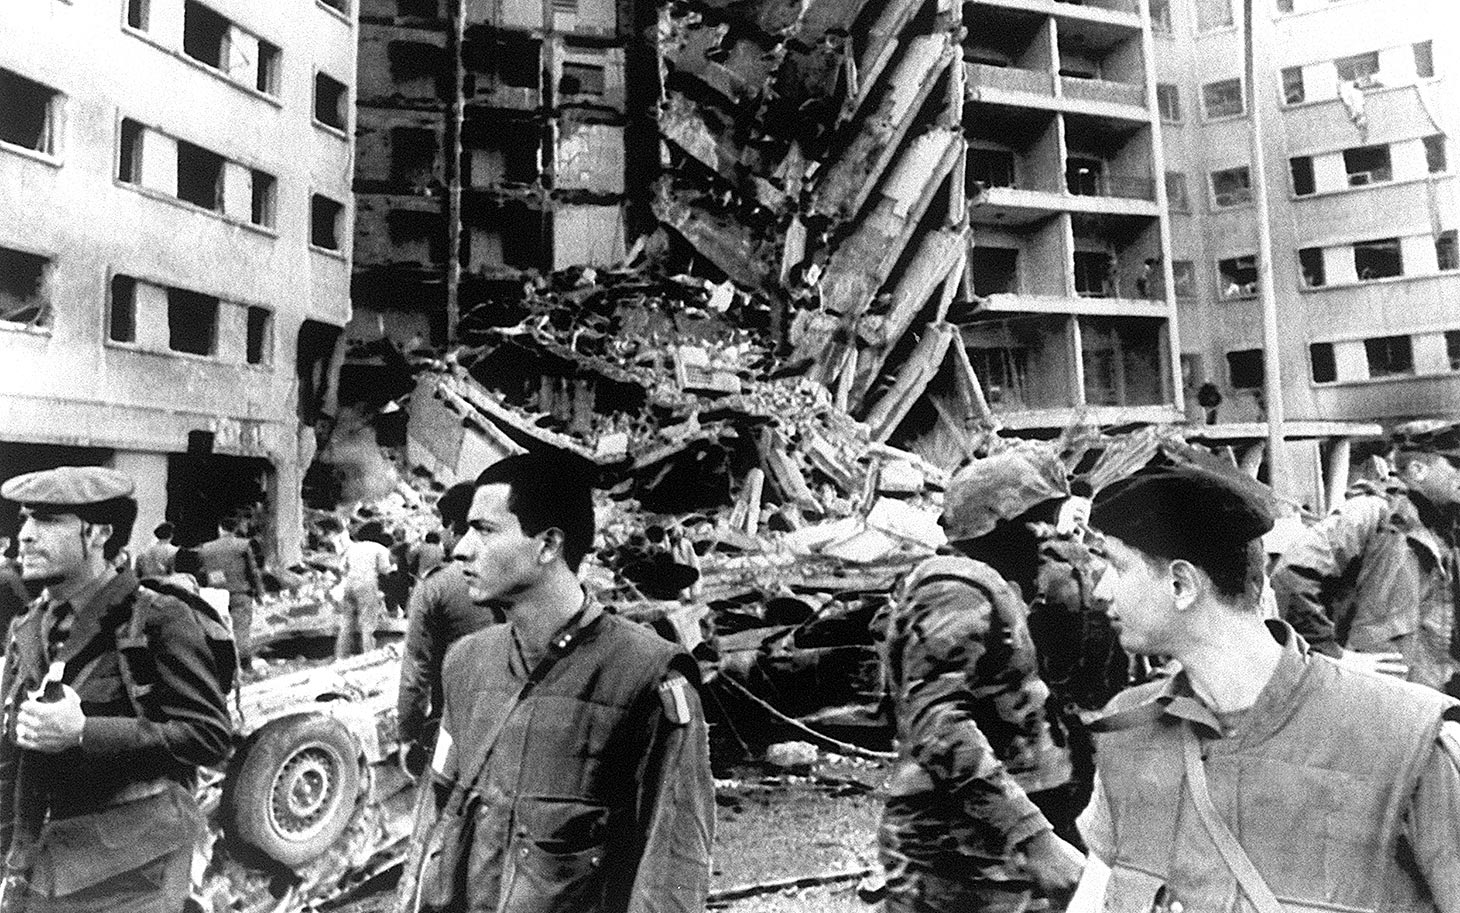 A Lebanese policeman (far L), a French soldier, a U.S. Marine (with helmet) and a French soldier stand guard 18 April 1983 in front of the destroyed section of the U.S. embassy in Beirut. A bomb partially destroyed the building killing and injuring scores of people. (Photo credit should read -/AFP/Getty Images)